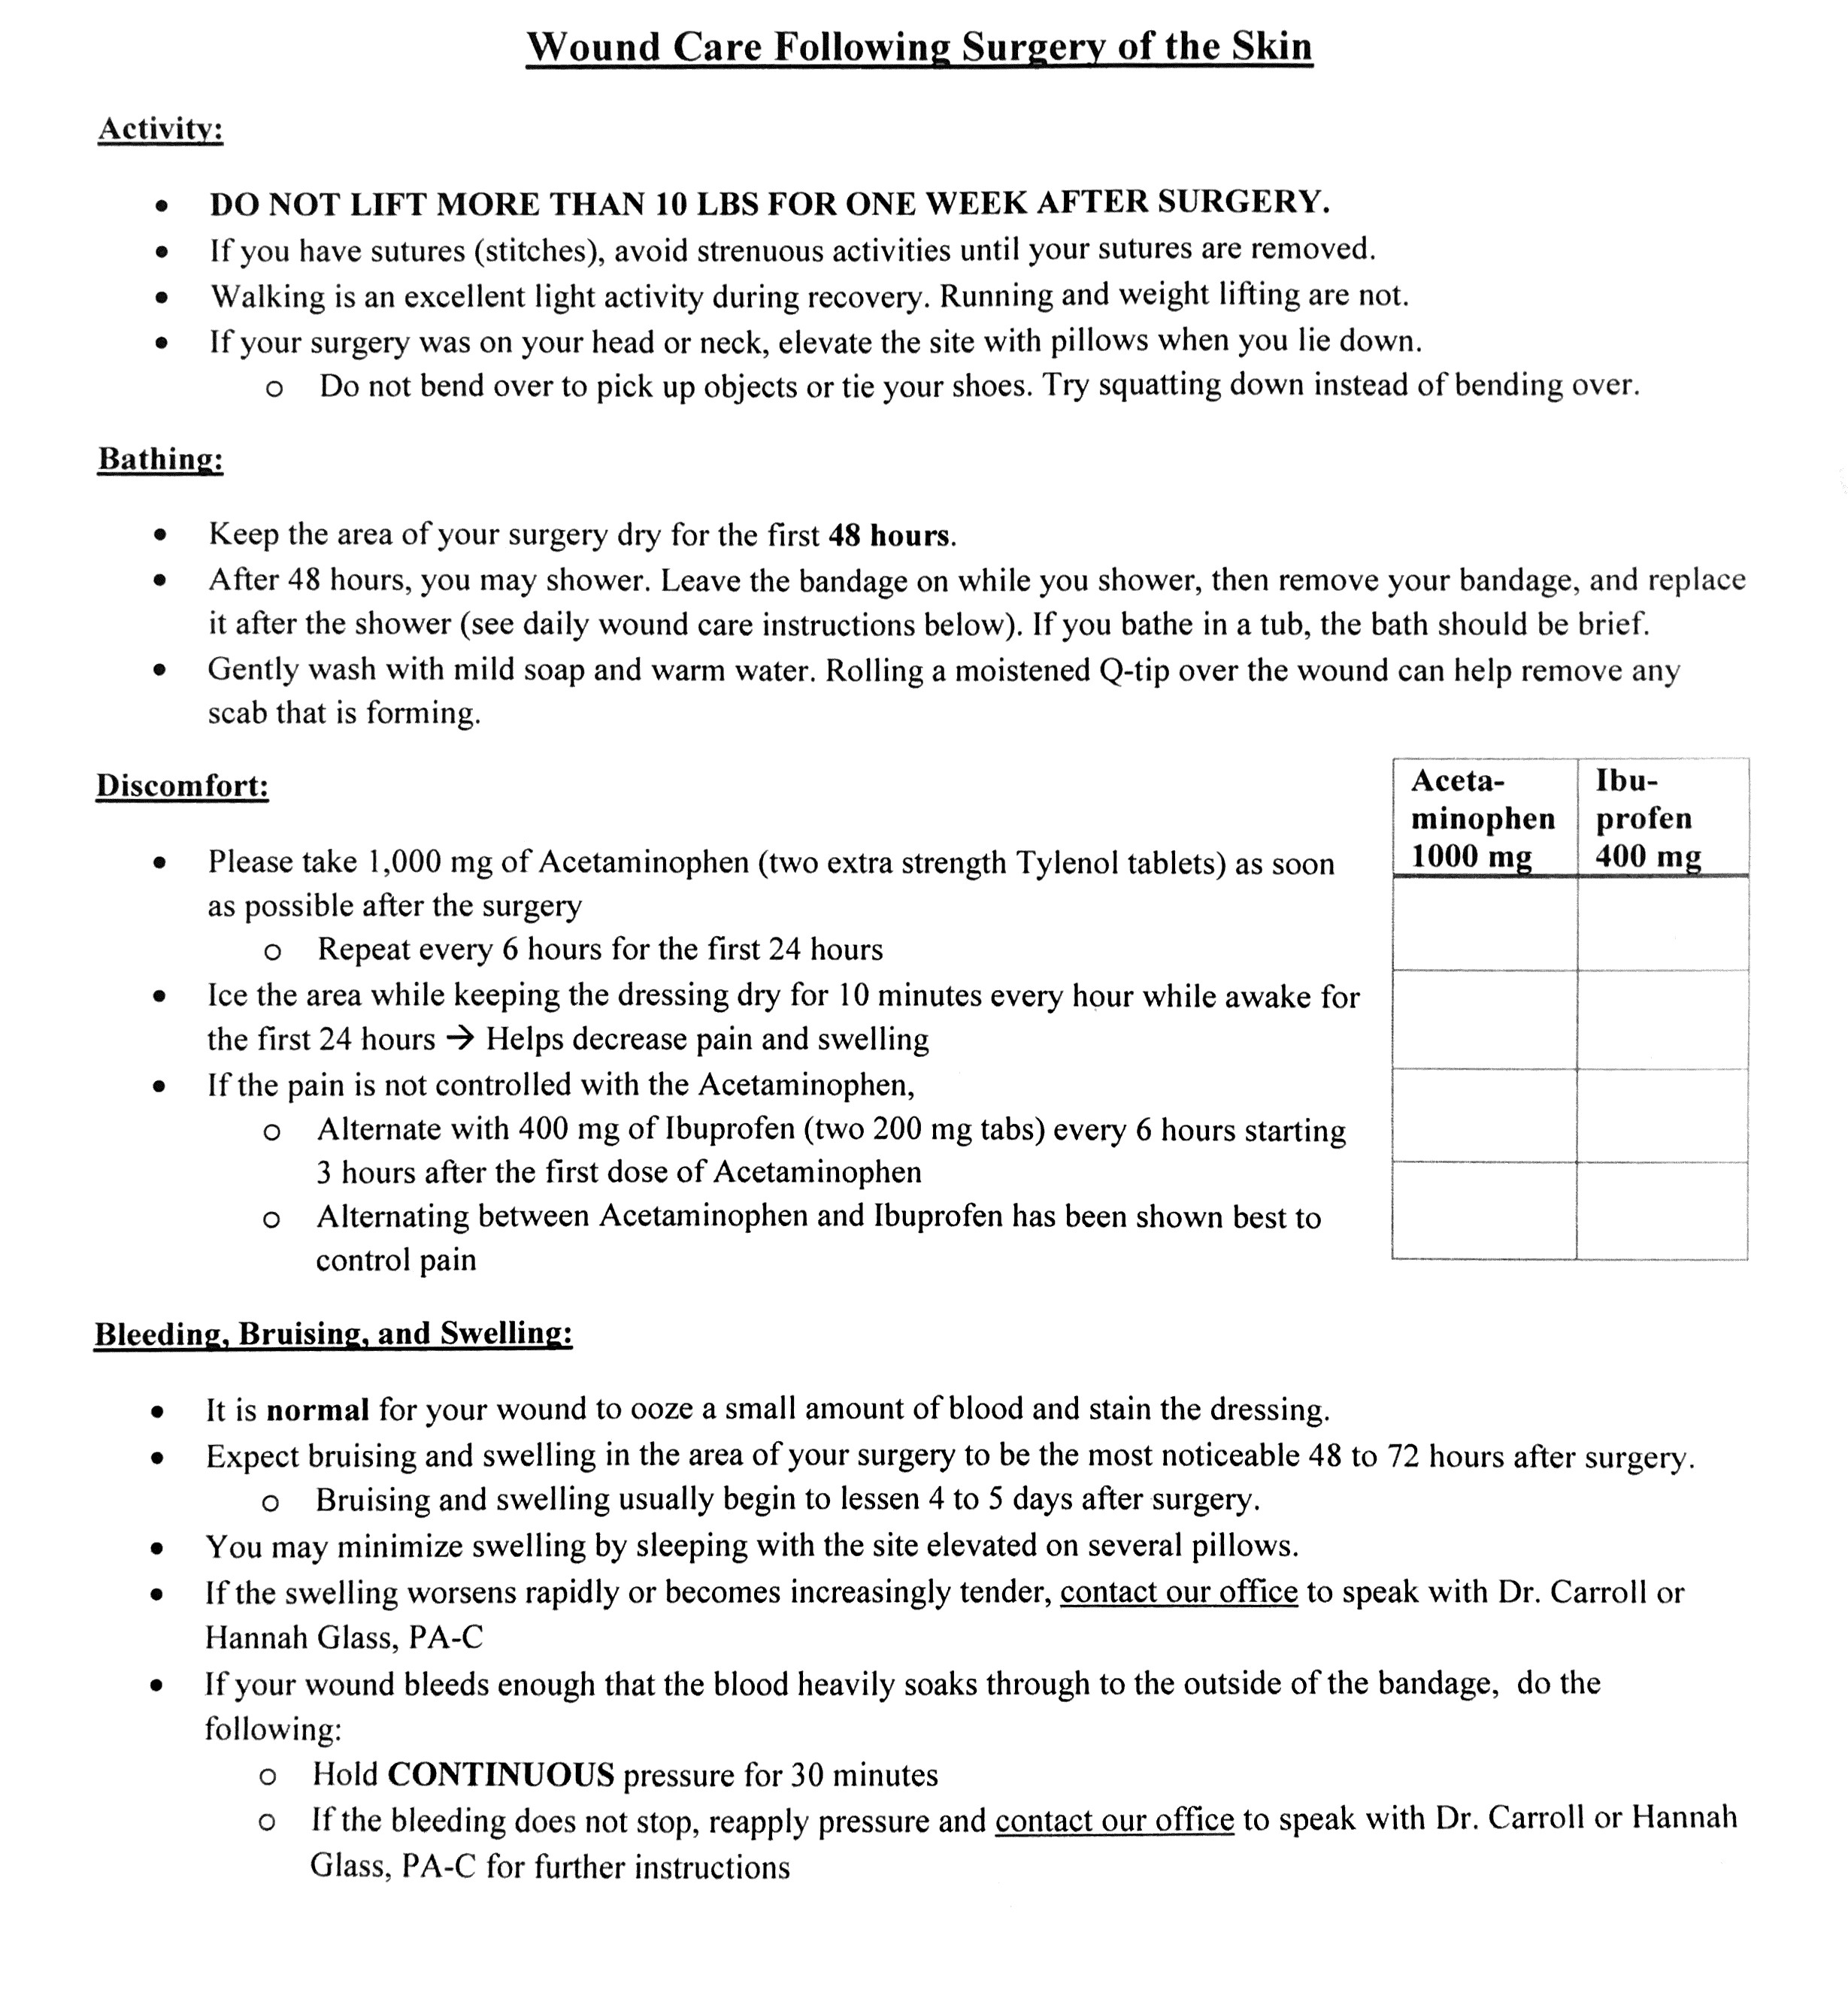 A typical post-operative care sheet will look something like this. Patients sometimes find the instructions intimidating and difficult to follow, so they call in after hours to nurses to ask follow-up questions. Furthermore, if instructions aren't followed properly, serious health concerns and consequences could arise.